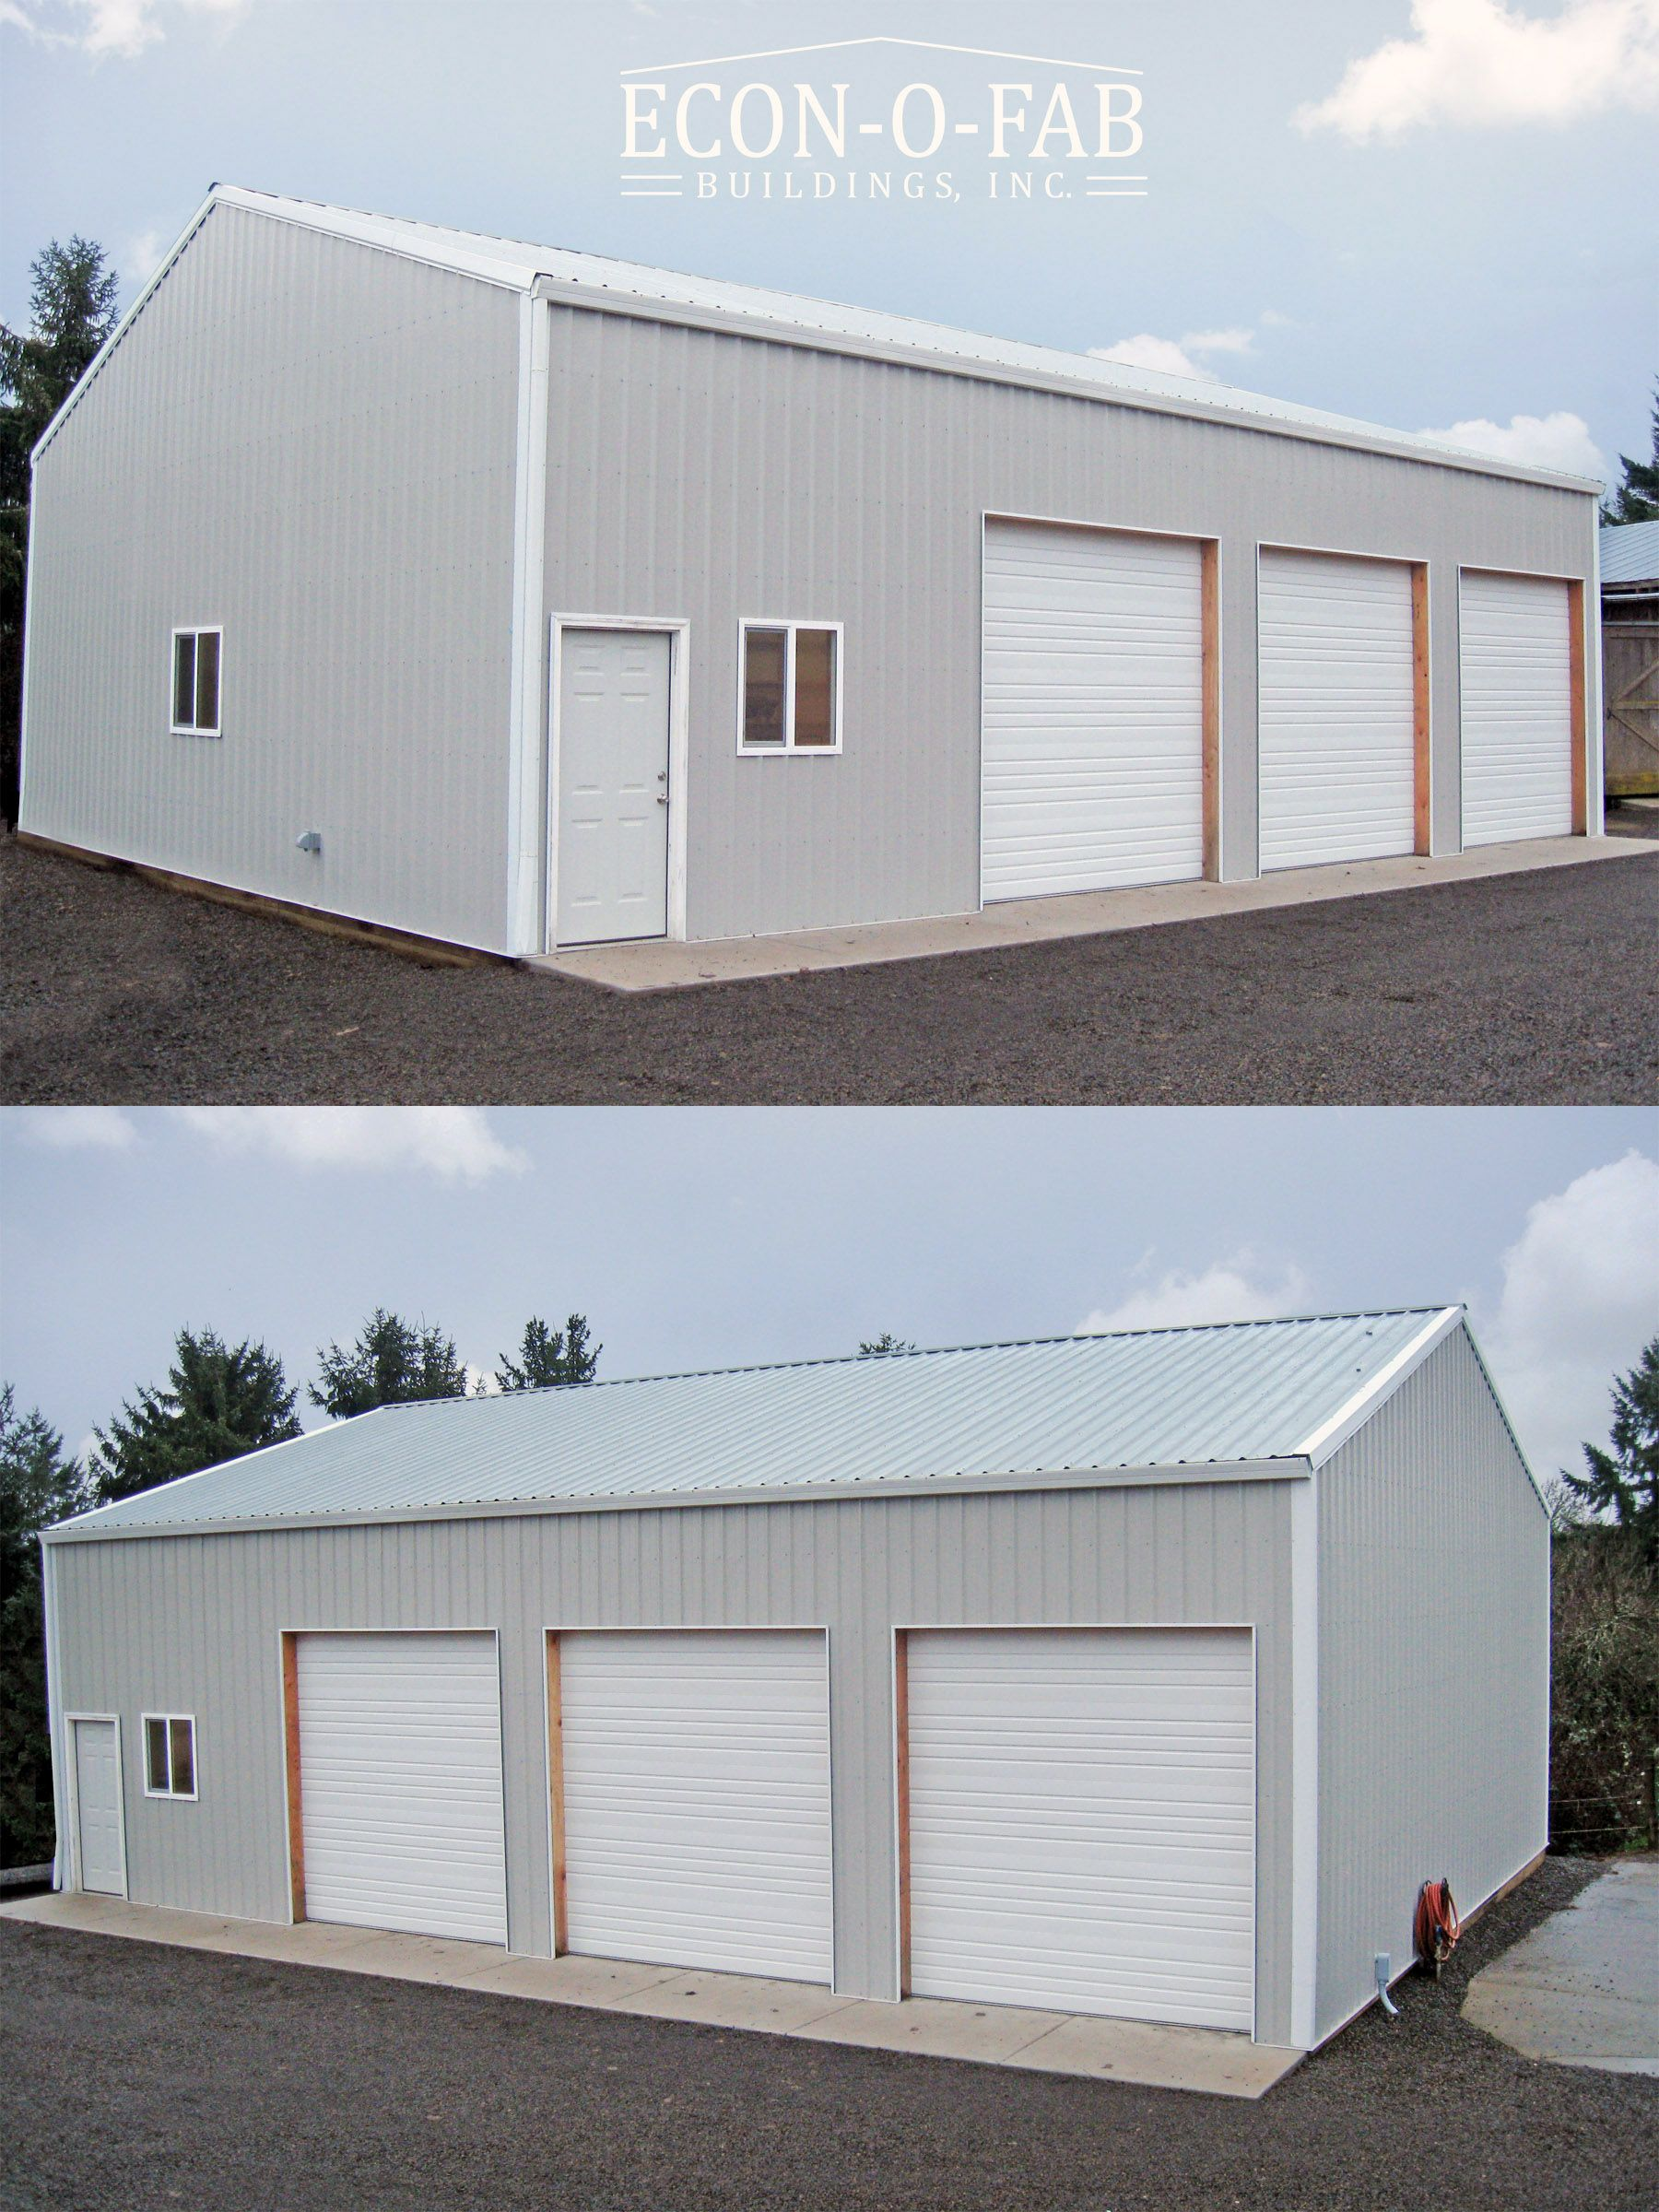 36 X 48 X 14 Pole Building In 2020 Pole Barn Garage Metal Garage Buildings Building A Pole Barn